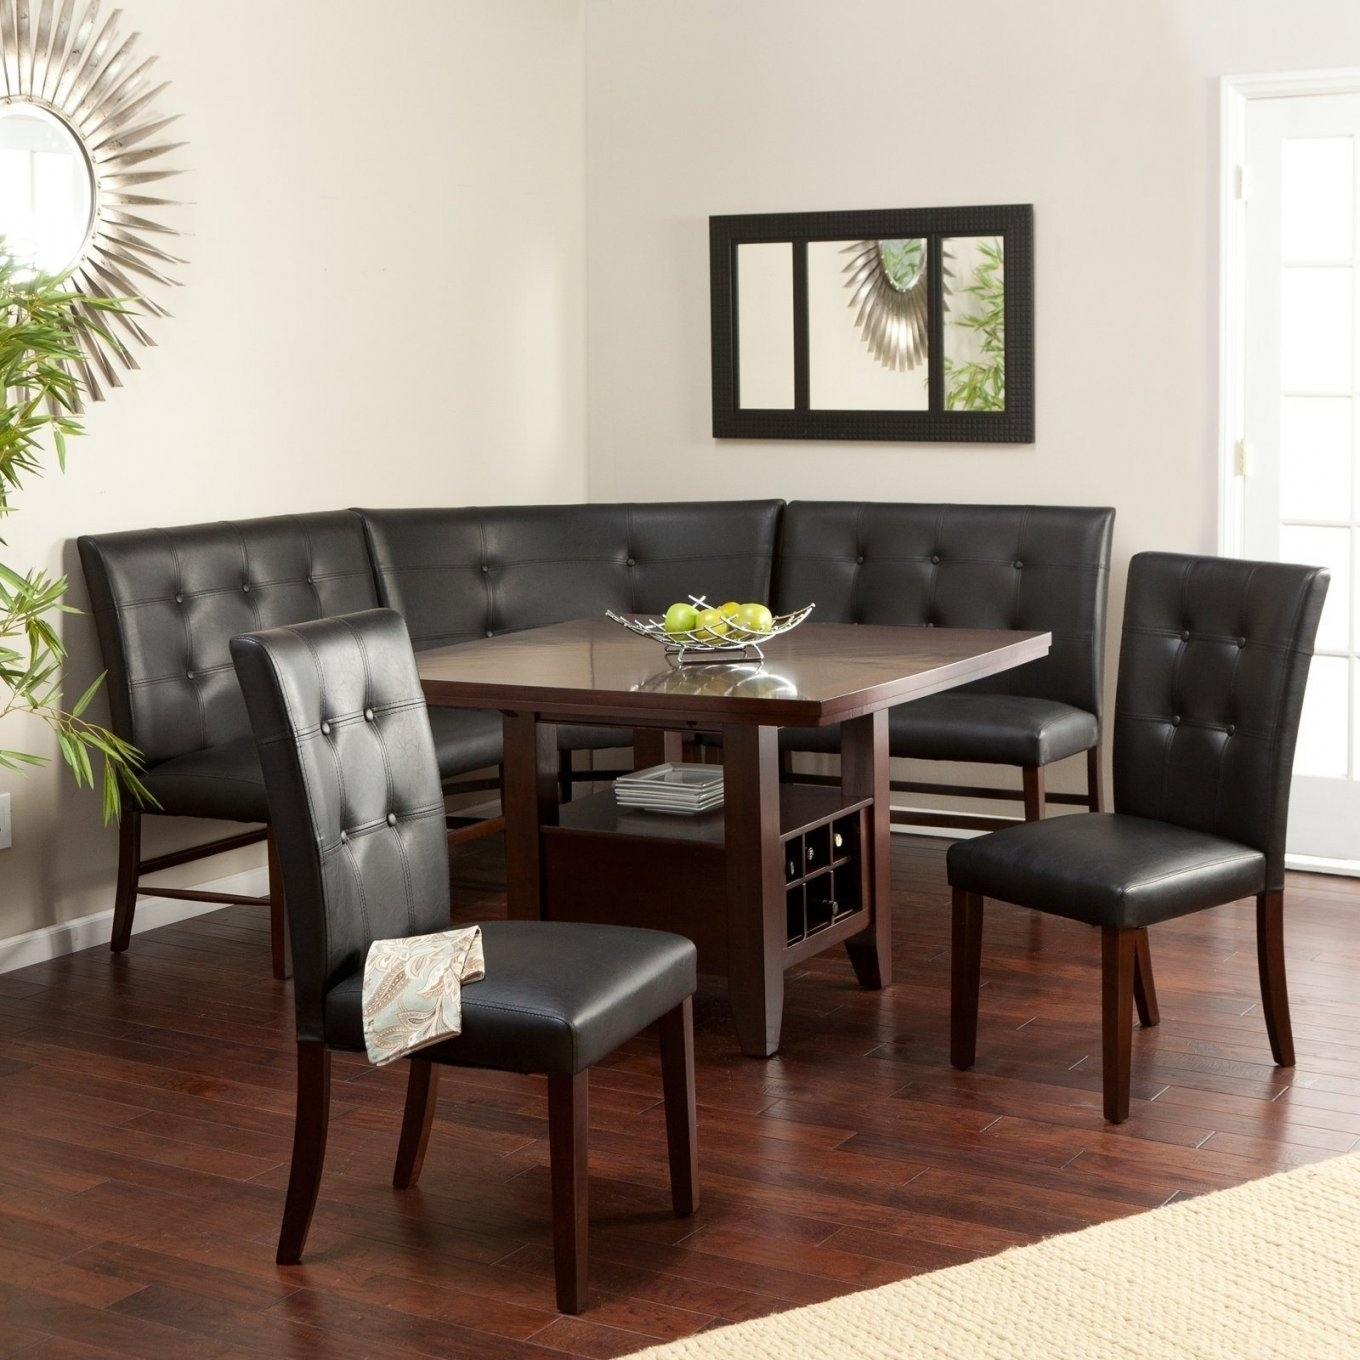 6 Person Round Dining Table Popular Tables Awesome And With Regard with Latest Round 6 Person Dining Tables